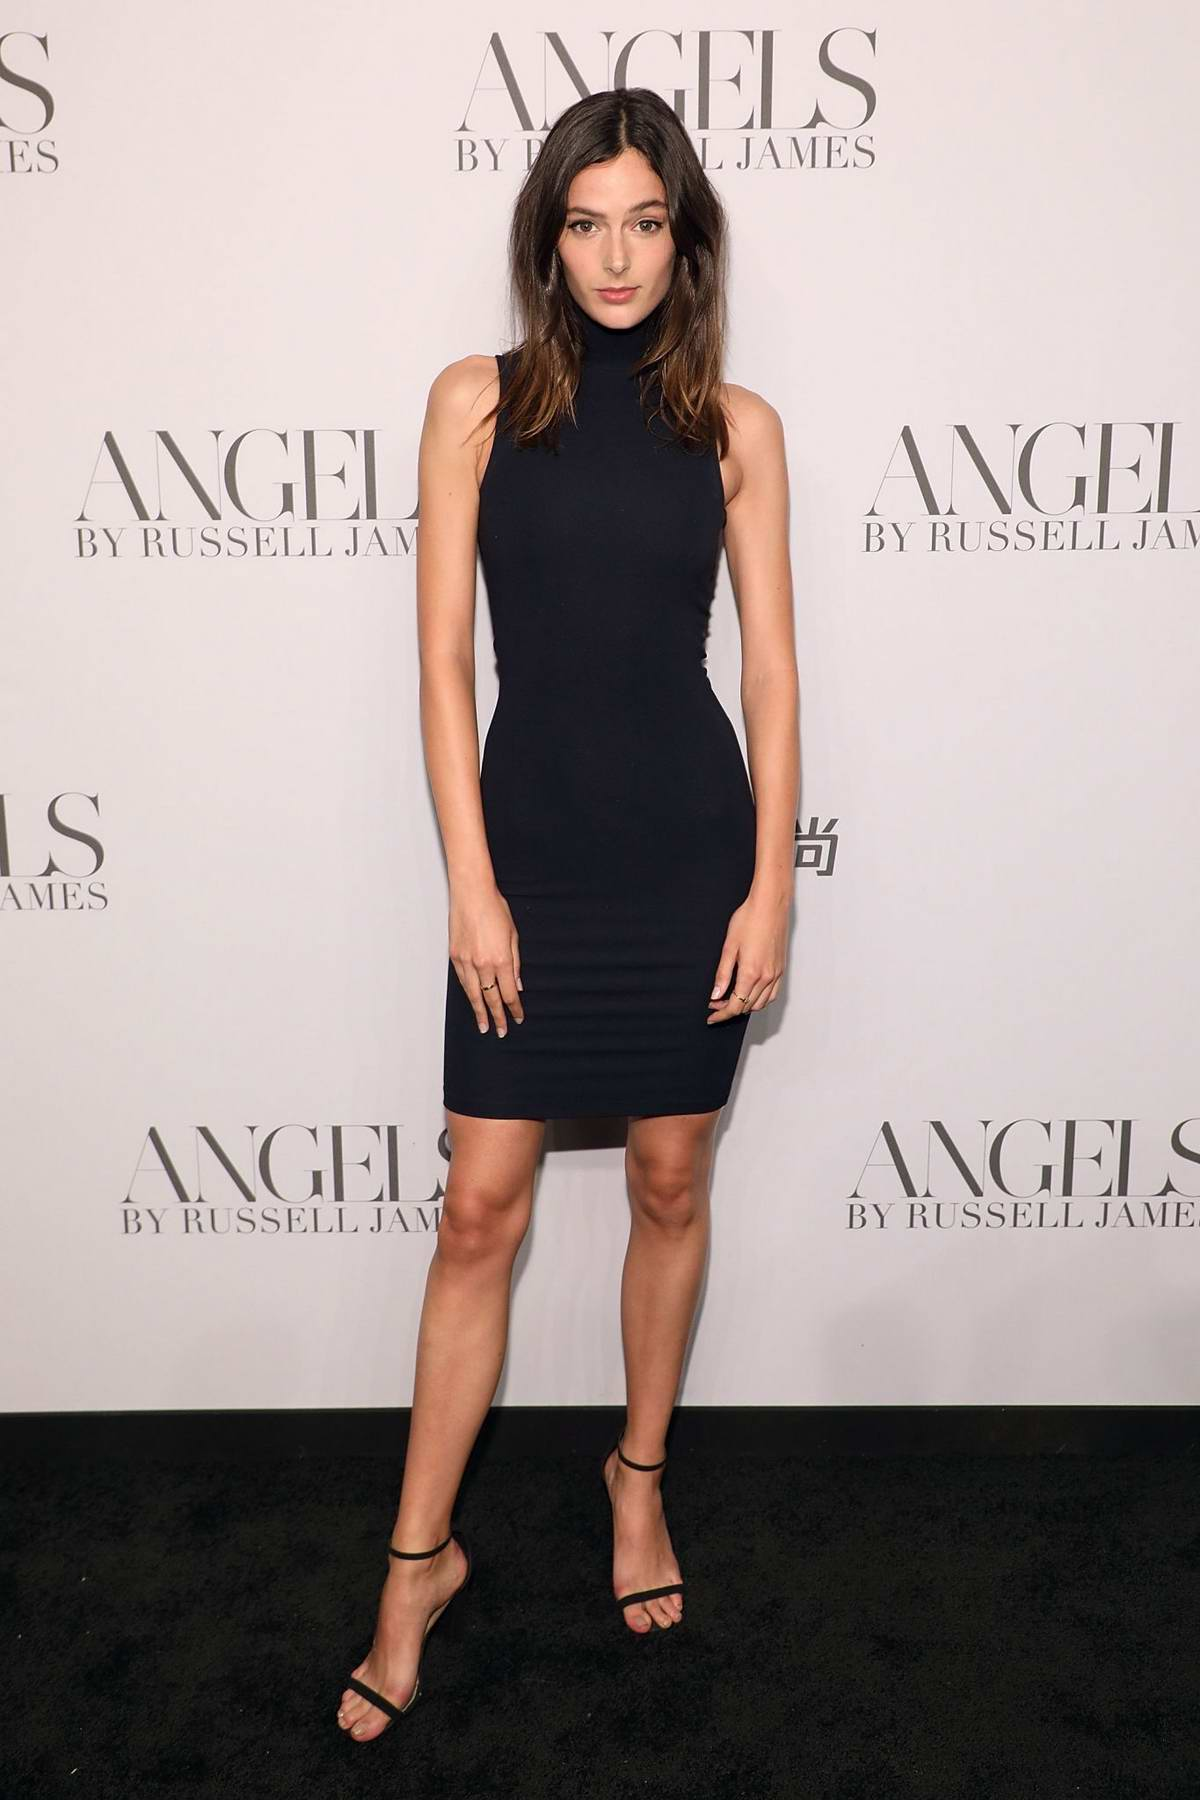 Sadie Newman attends 'ANGELS' by Russell James Book Launch And Exhibit in New York City